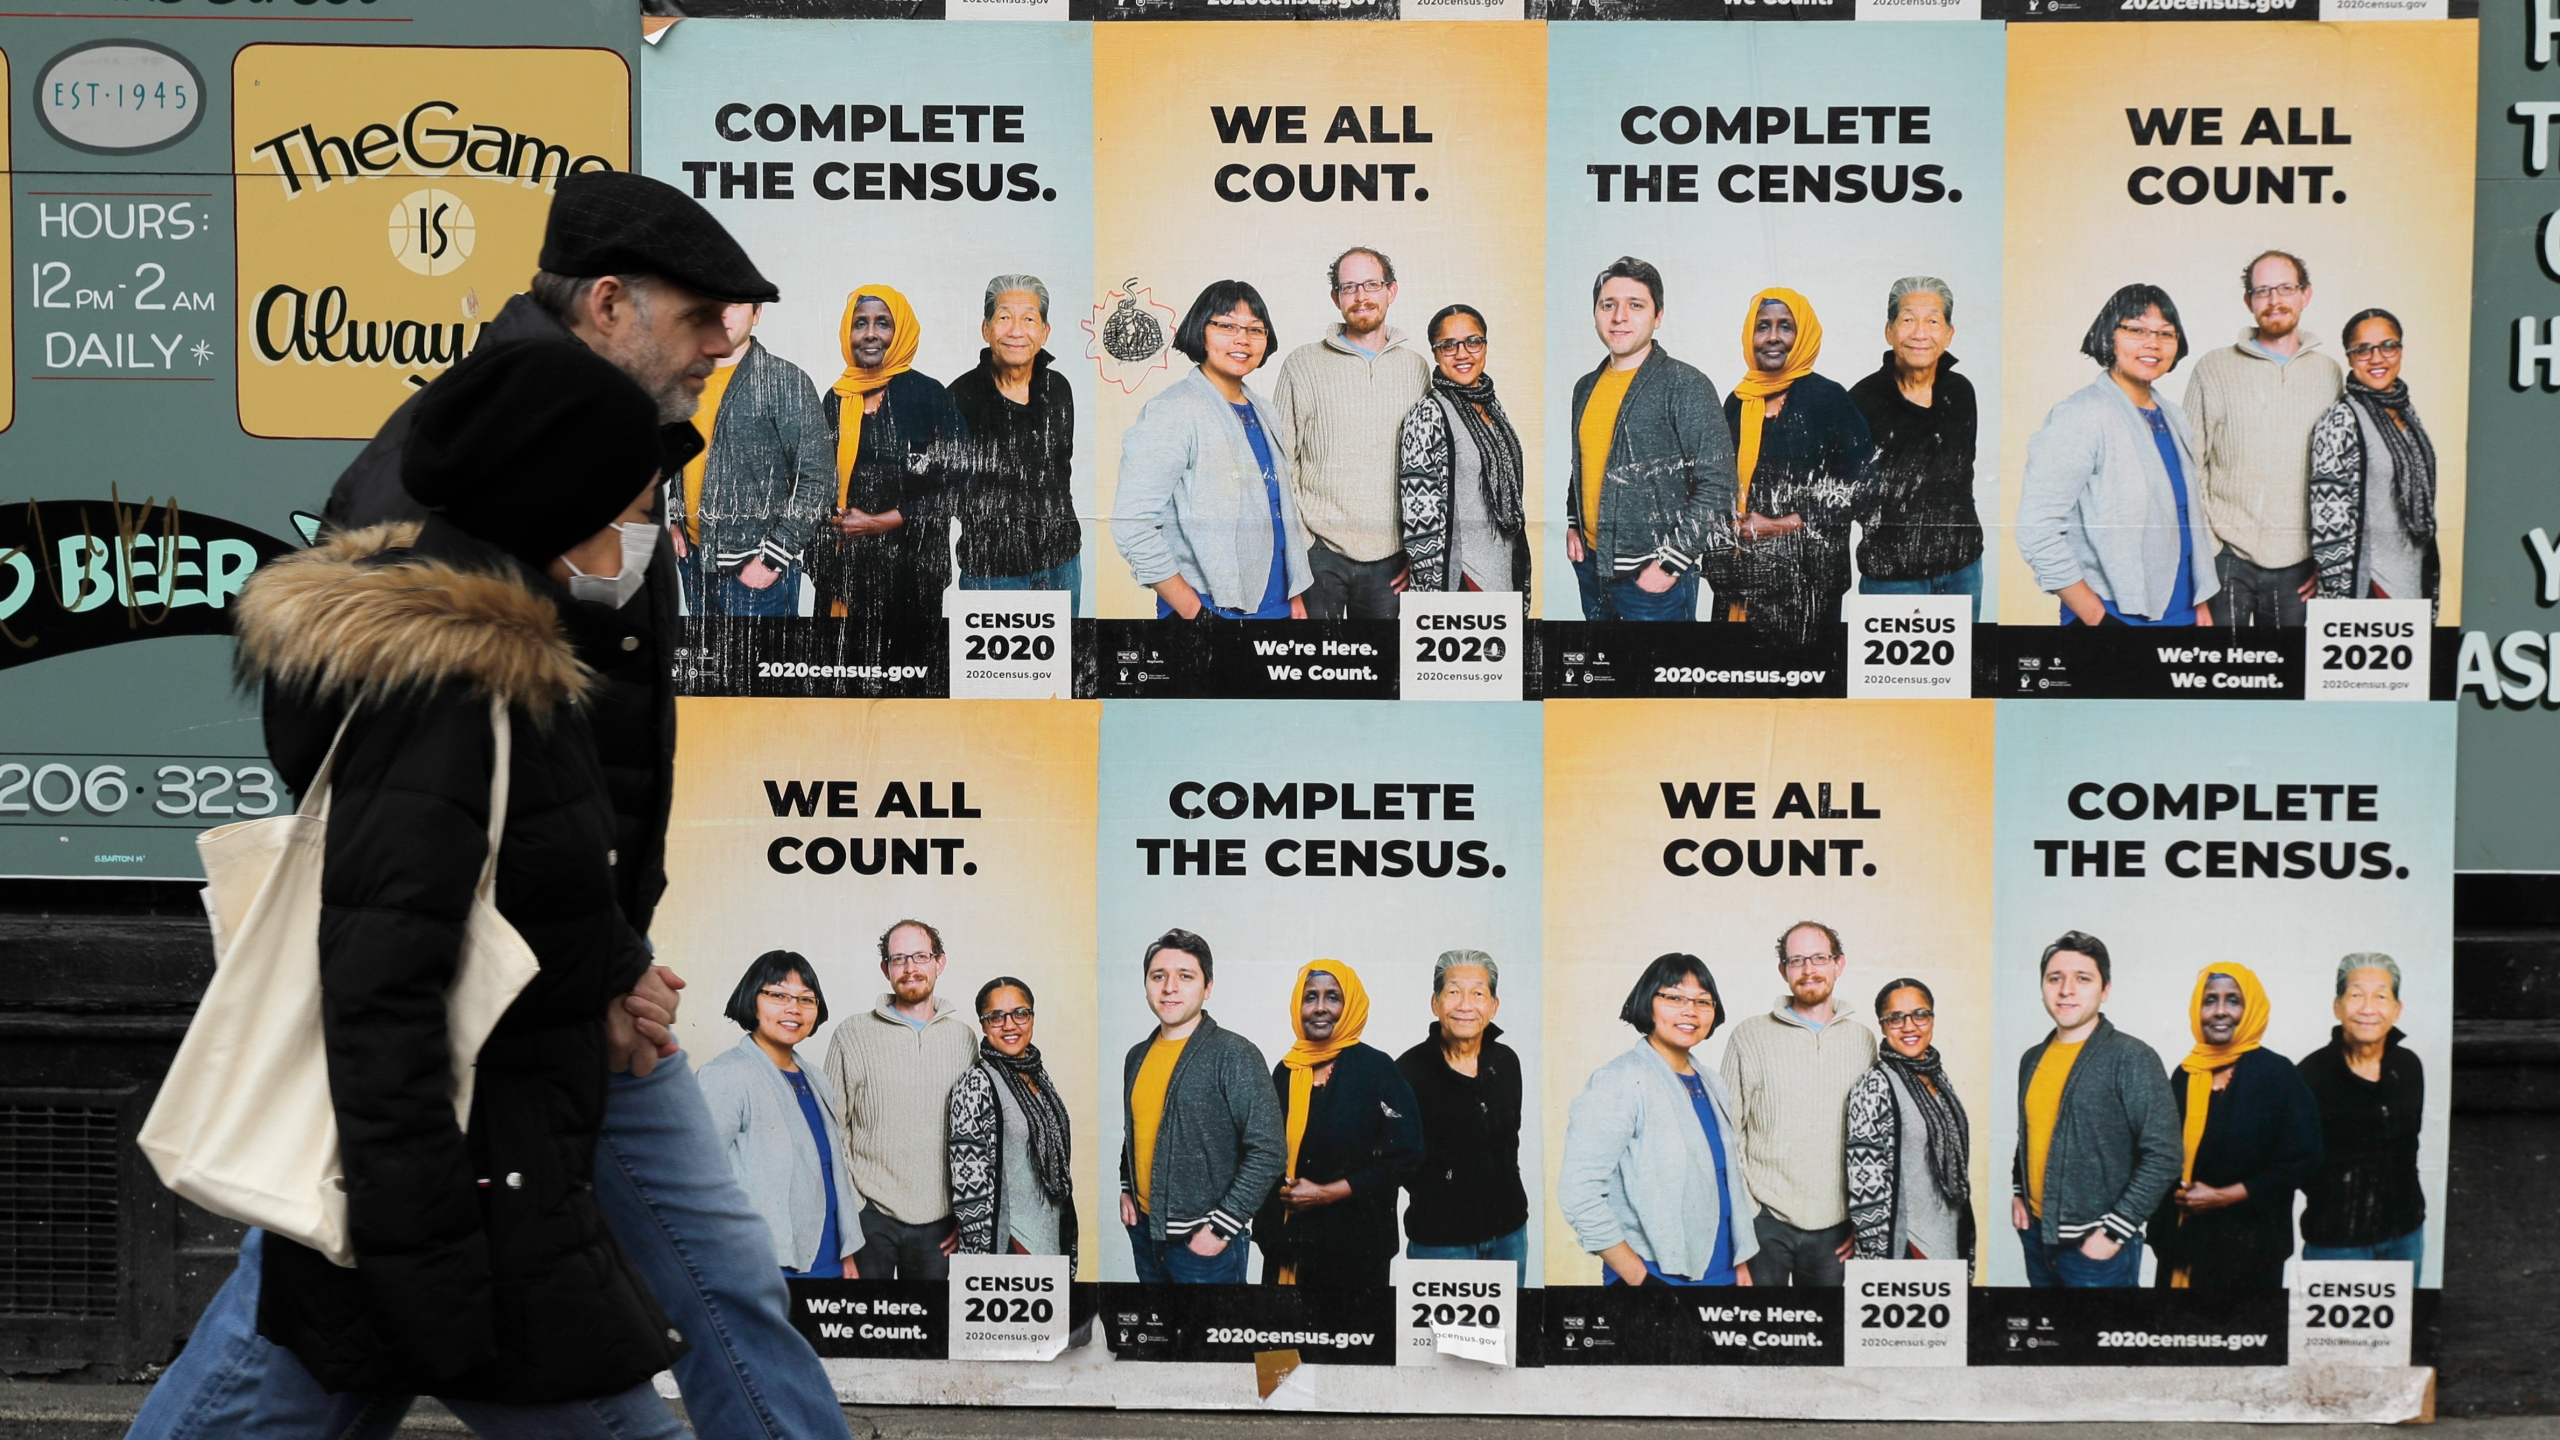 In this Wednesday, April 1, 2020 file photo, People walk past posters encouraging participation in the 2020 Census in Seattle's Capitol Hill neighborhood. From McKenzie County, North Dakota to St. Johns County Florida, the growth in the number of people who identified as multiracial on 2020 census responses soared over the last decade, rising from under 3% to more than 10% of the U.S. population from 2010 and 2020.(AP Photo/Ted S. Warren, File)